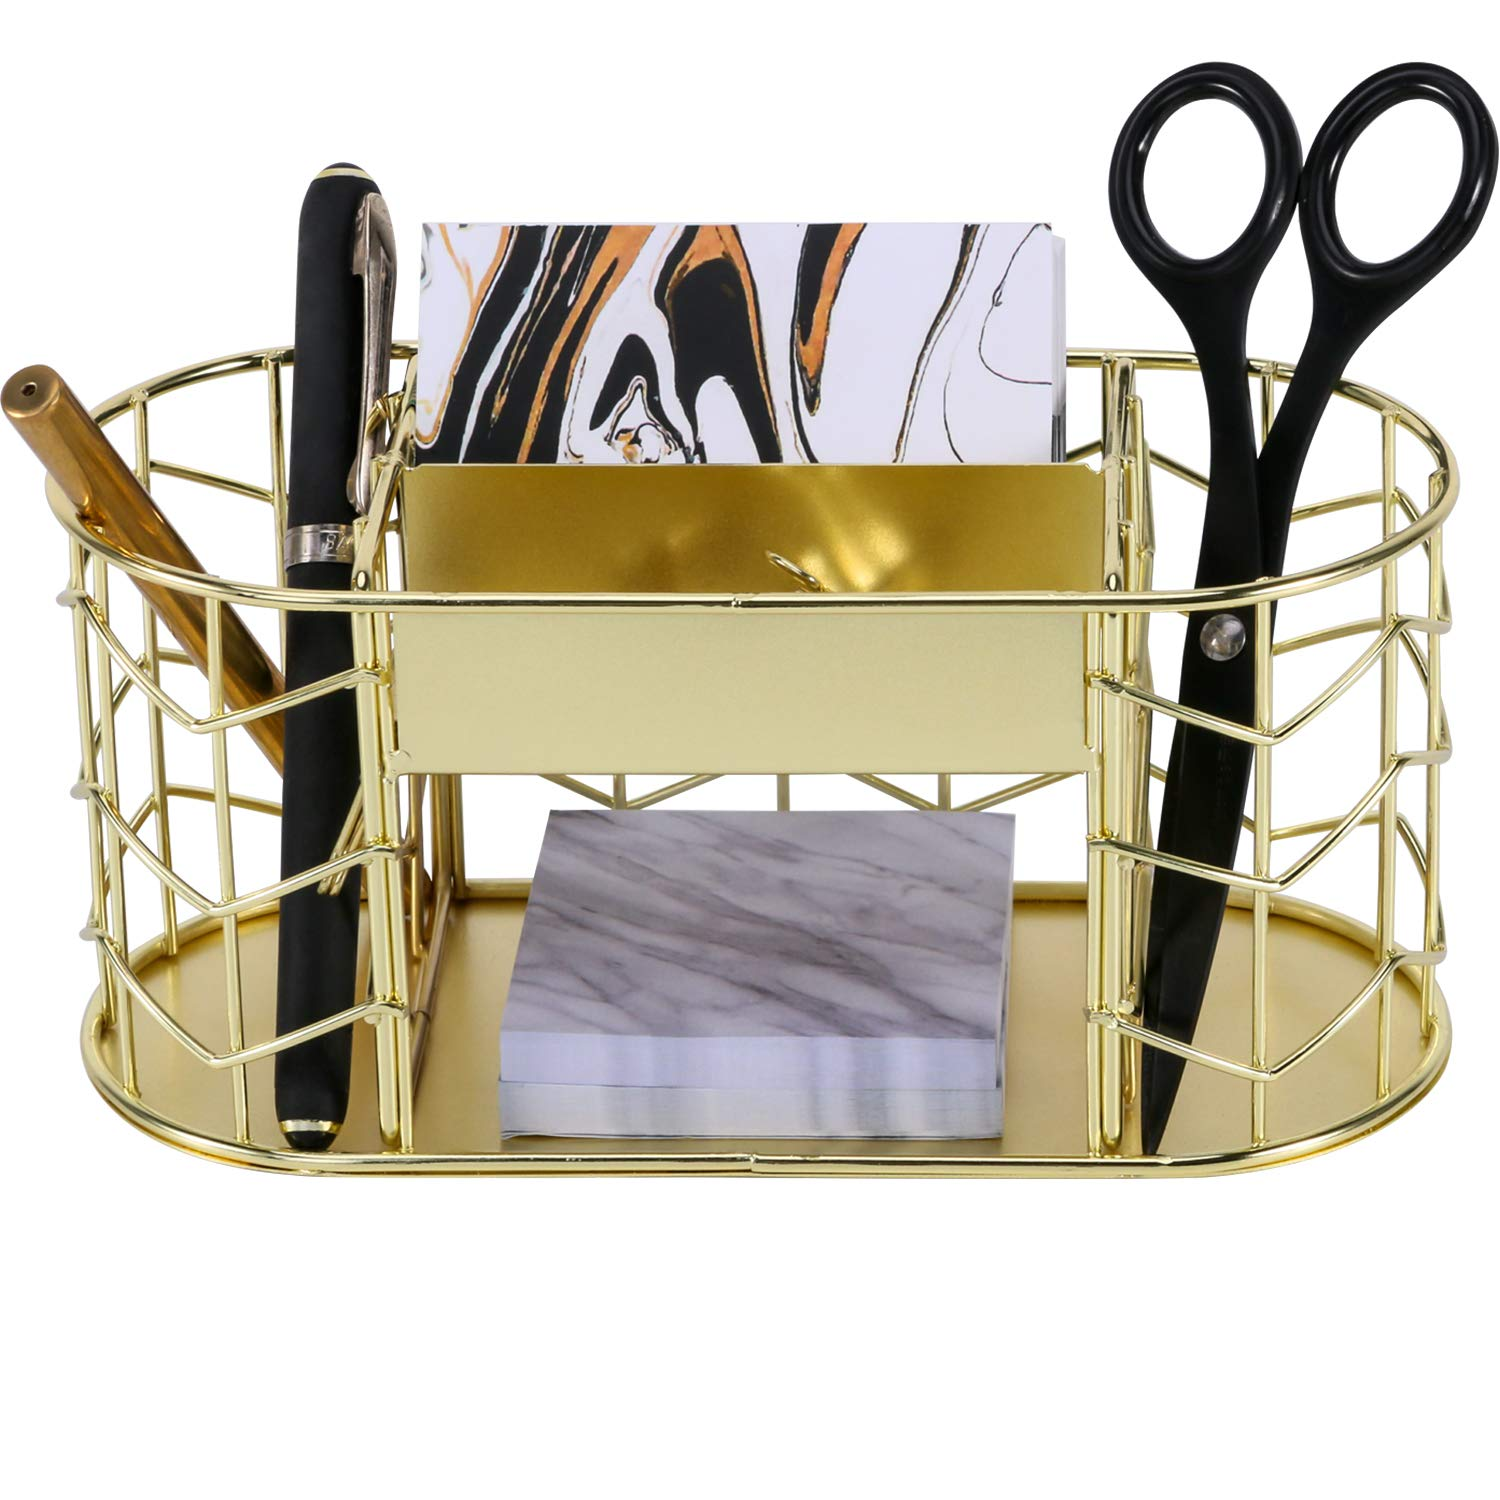 Nugorise Desk Supplies Organizer, 5 Compartments - 2 Pen Holders, 2 Slot Business Card Holder and Memo Holder, Multifunctional Wire Stationery Storage Caddy, Gold